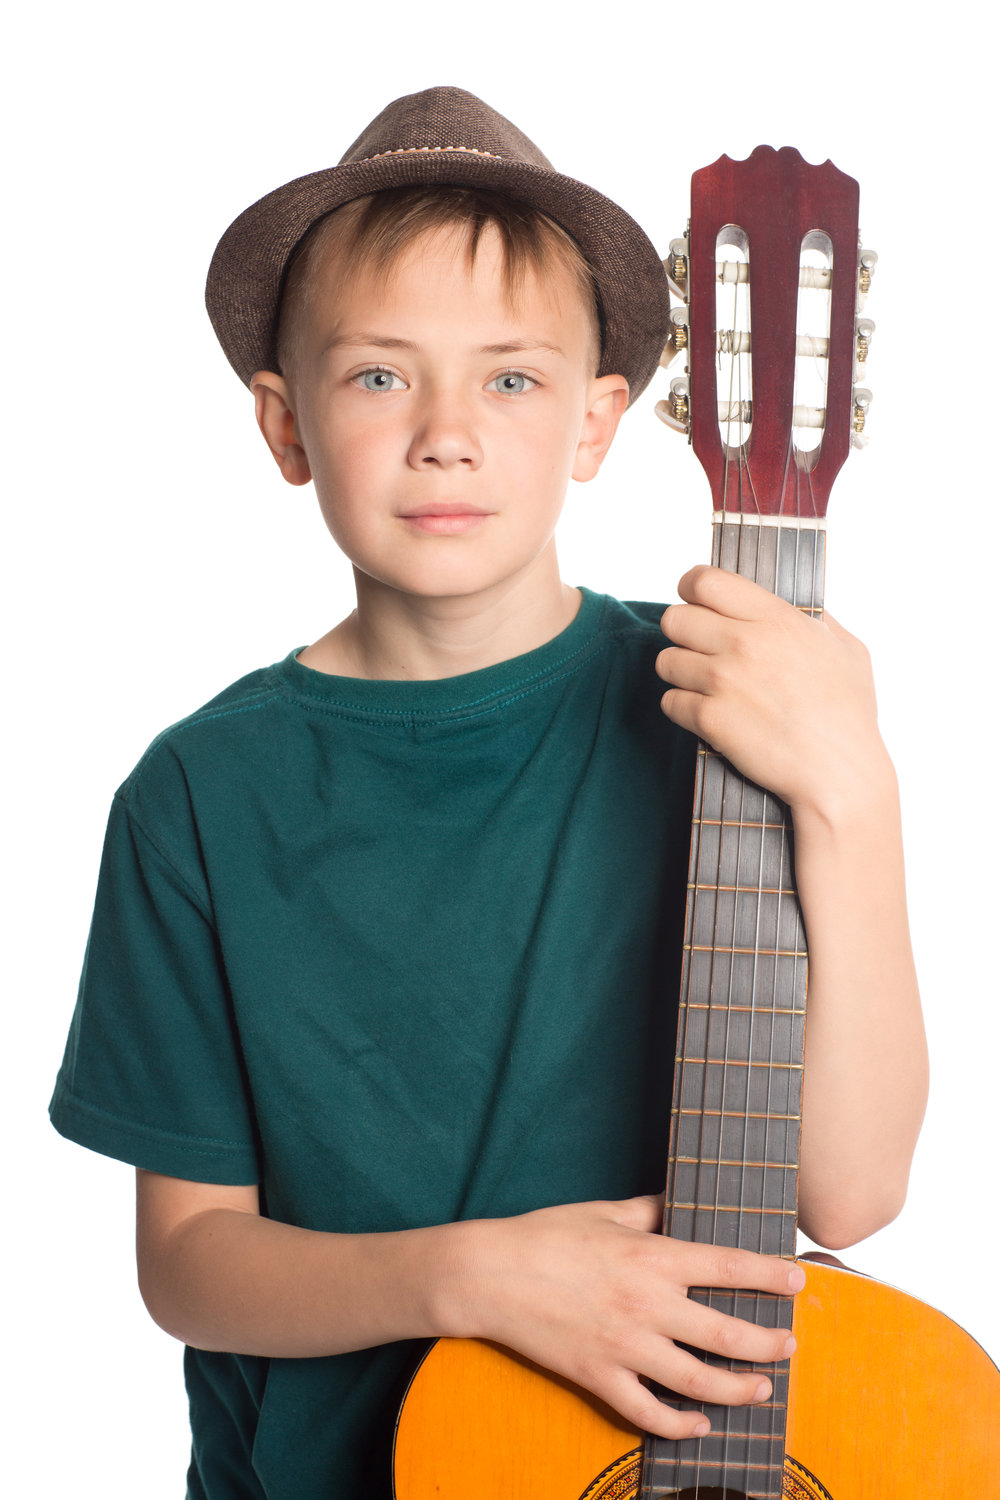 Portrait of a boy with a guitar